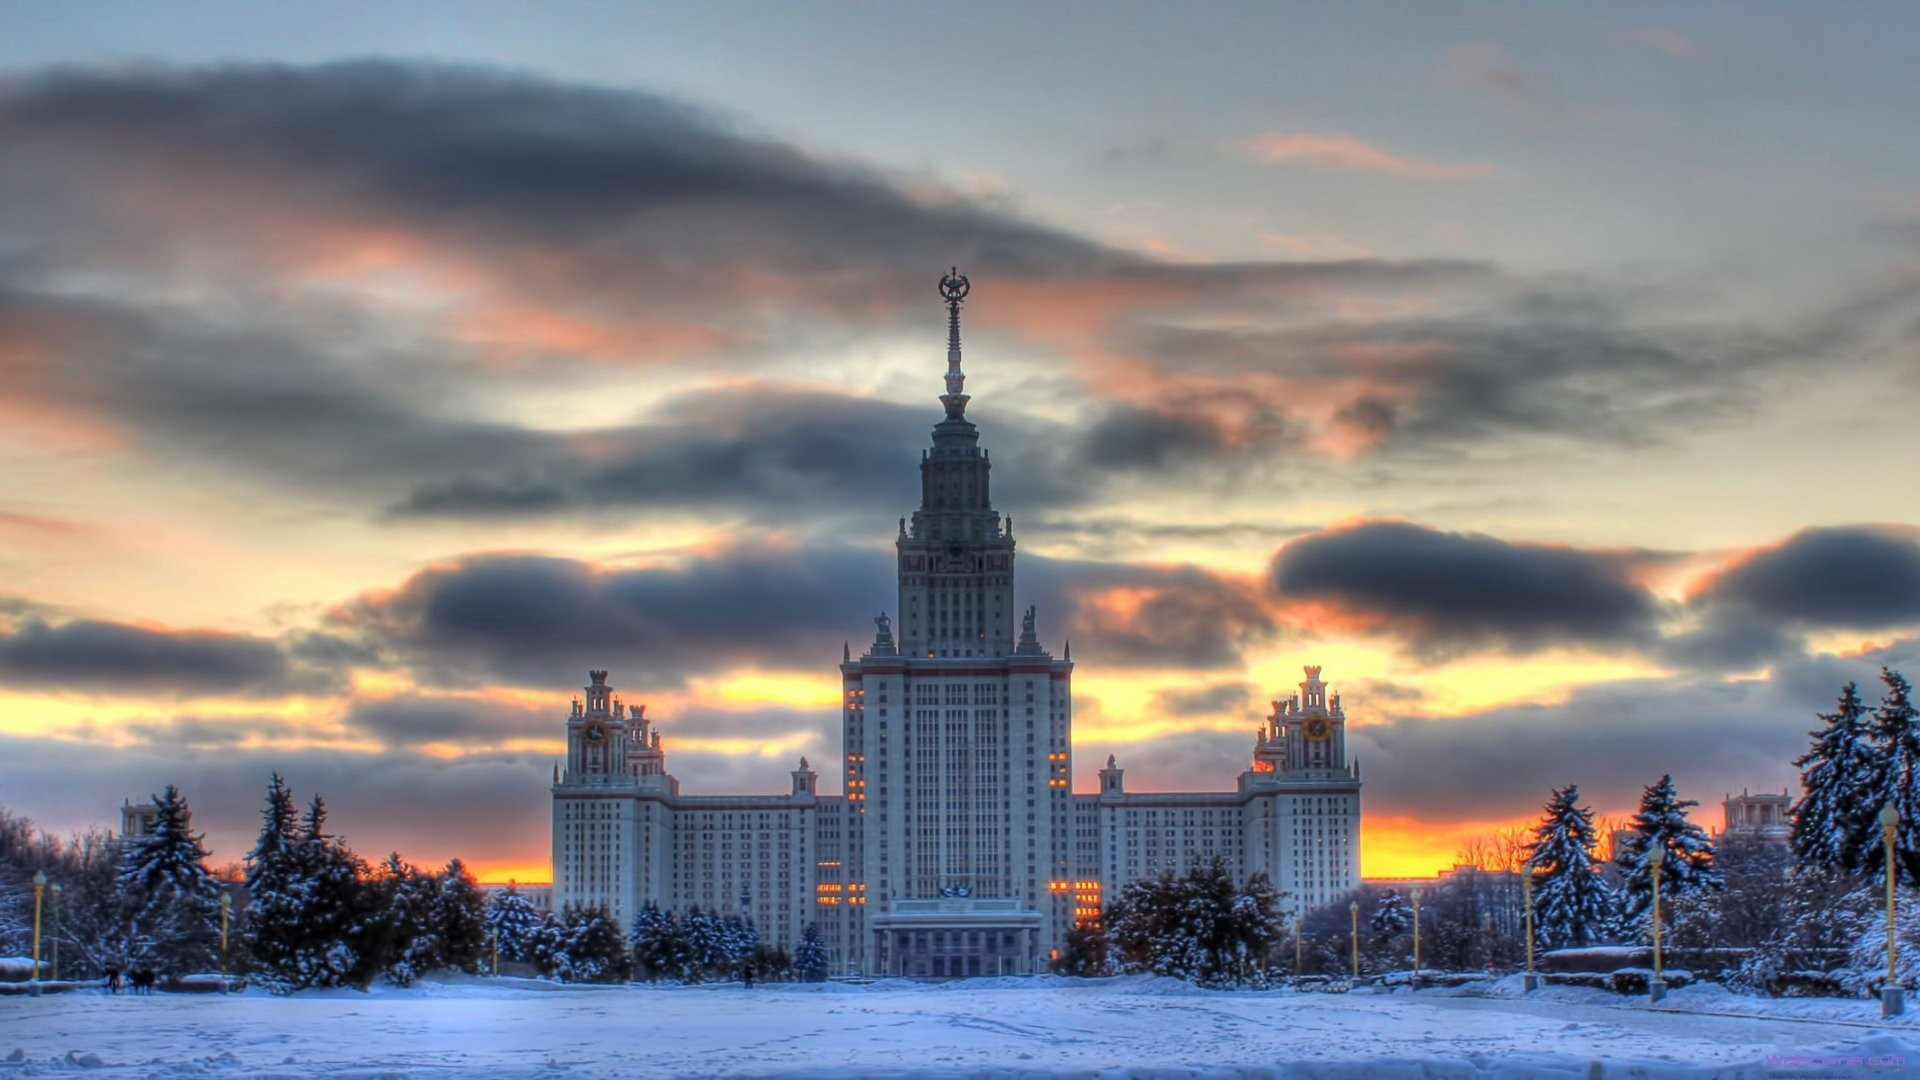 1920x1080 Government Building Old Soviet Union Kremlin Moscow Beauty Sky Winter  Clouds Trees Dual Monitor Background -